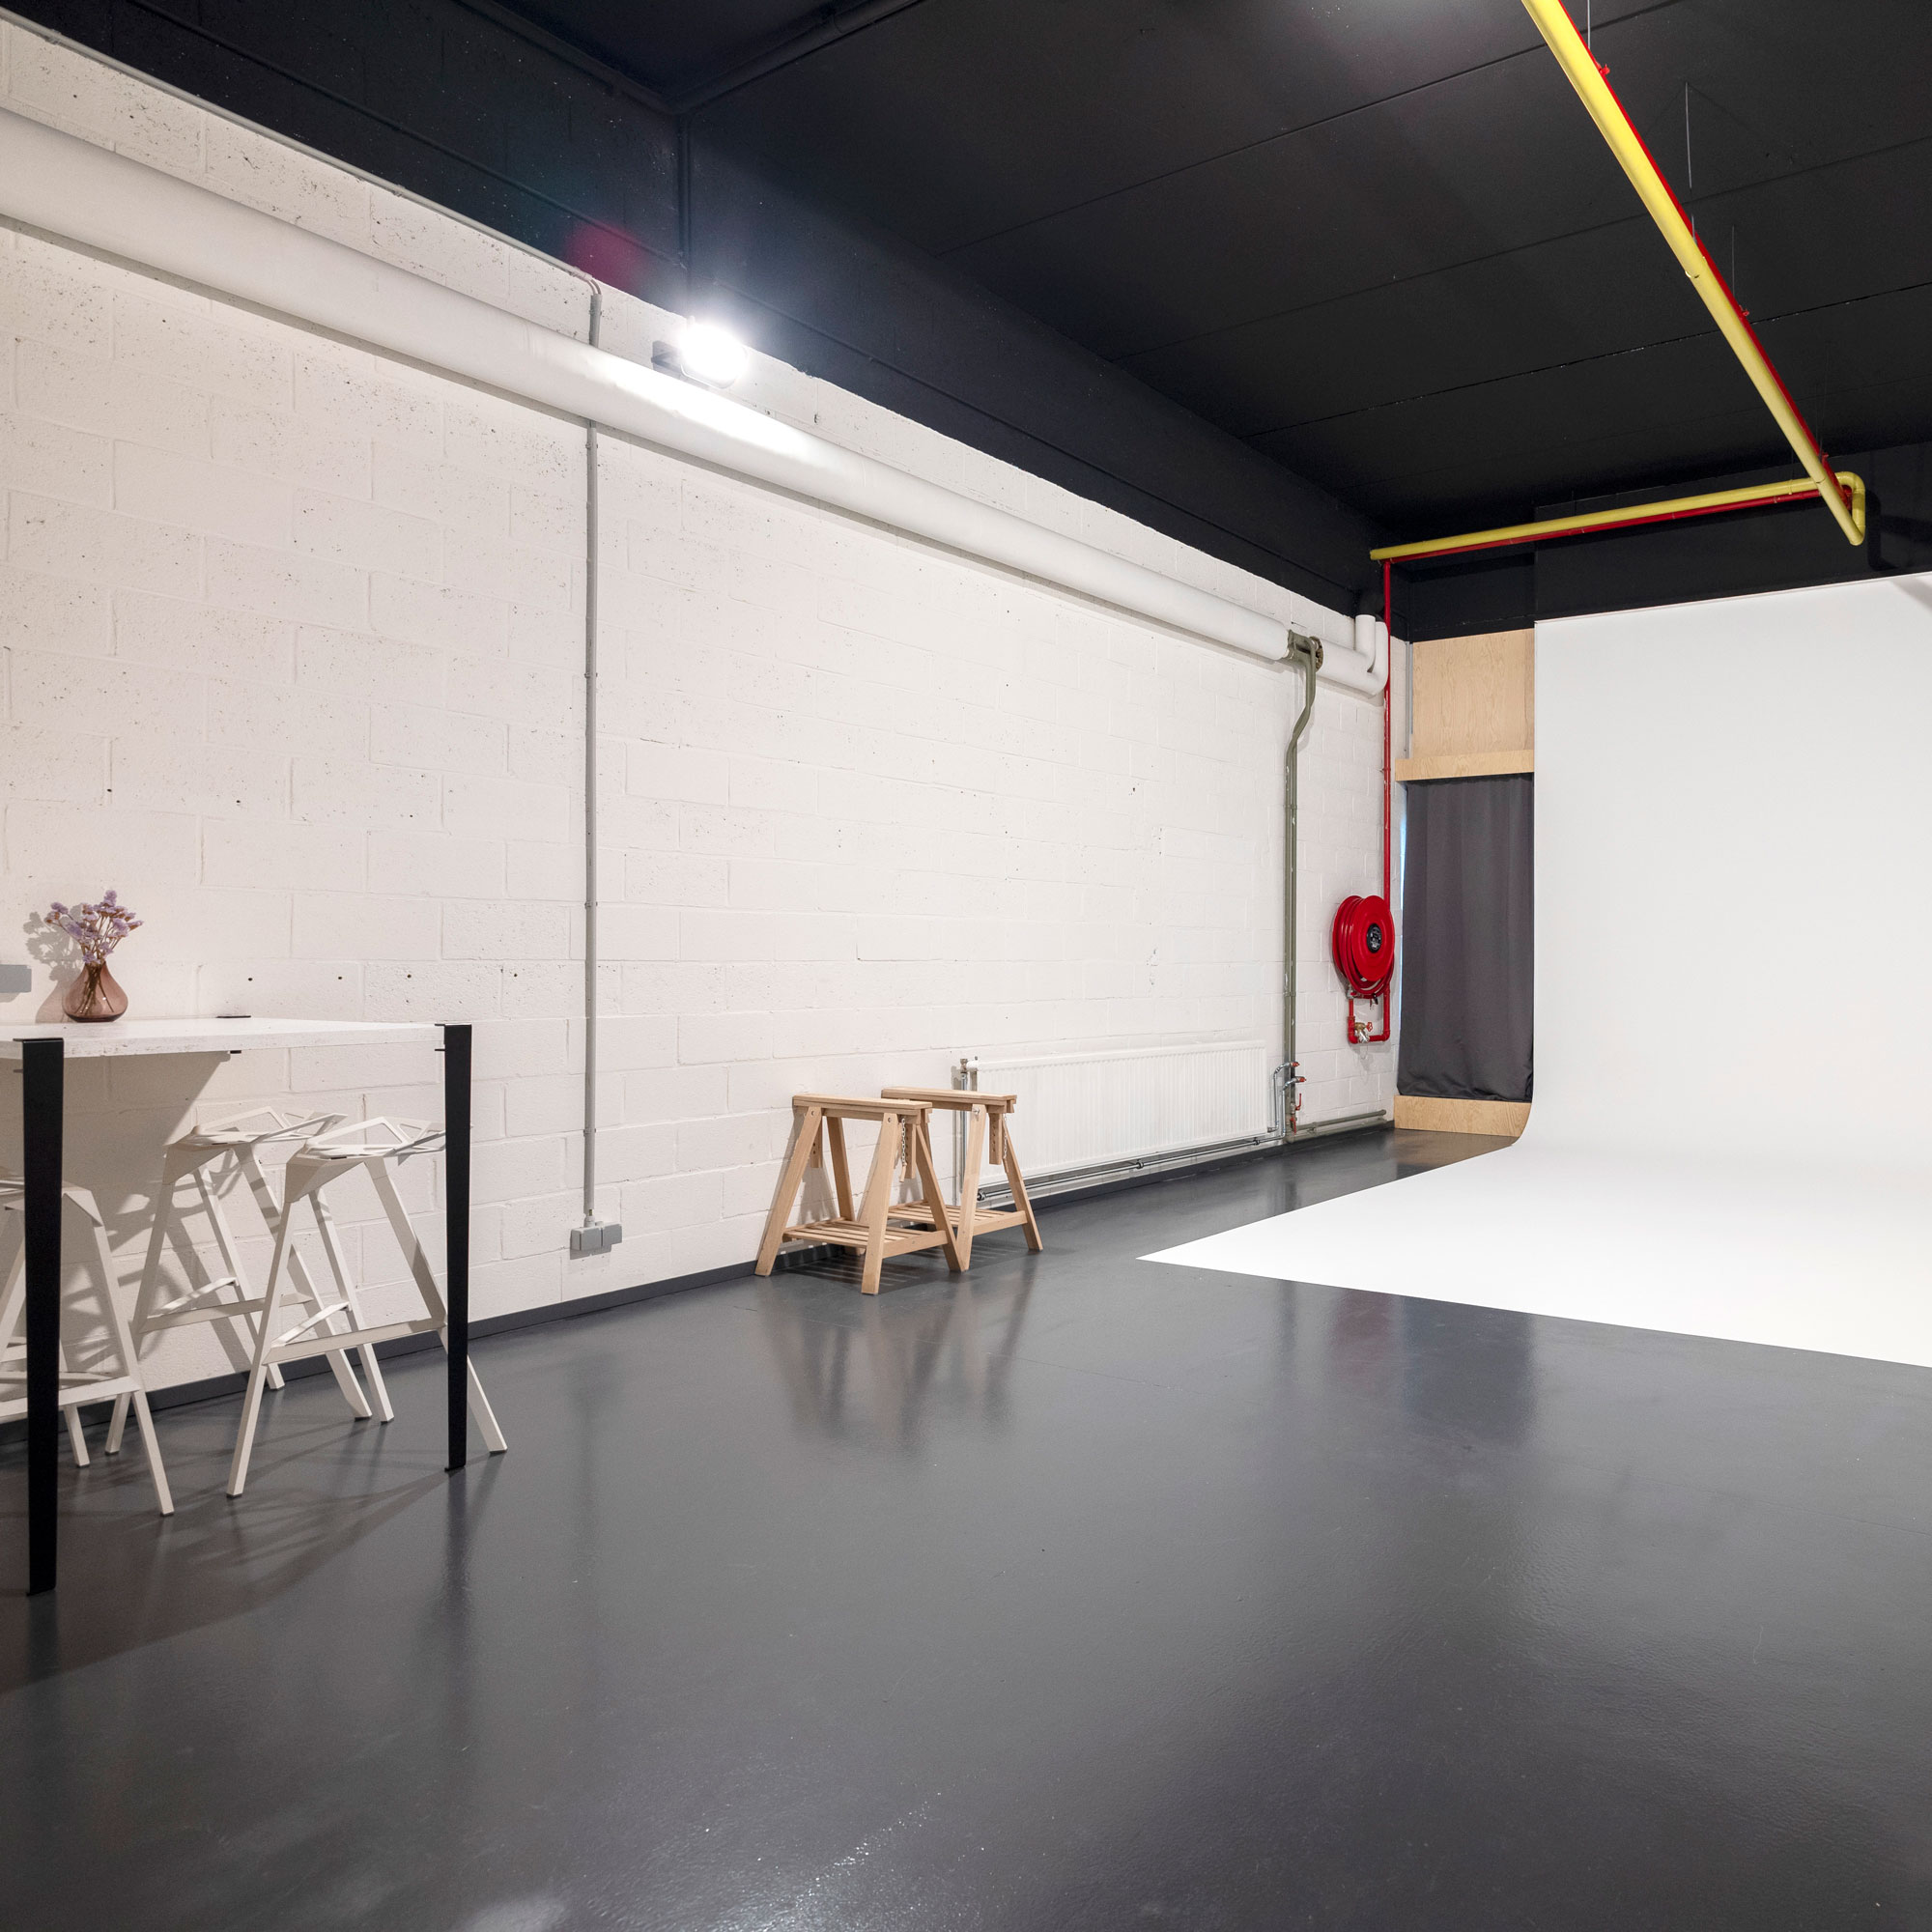 Studio 2 available to rent / verhuur / location at 50.8 Studio • Belgïe, Belgique, Belgium, Catering, Huur, Location, Louer, Photo, Rent, Rental, Soon, Studio, Verhuur, Video